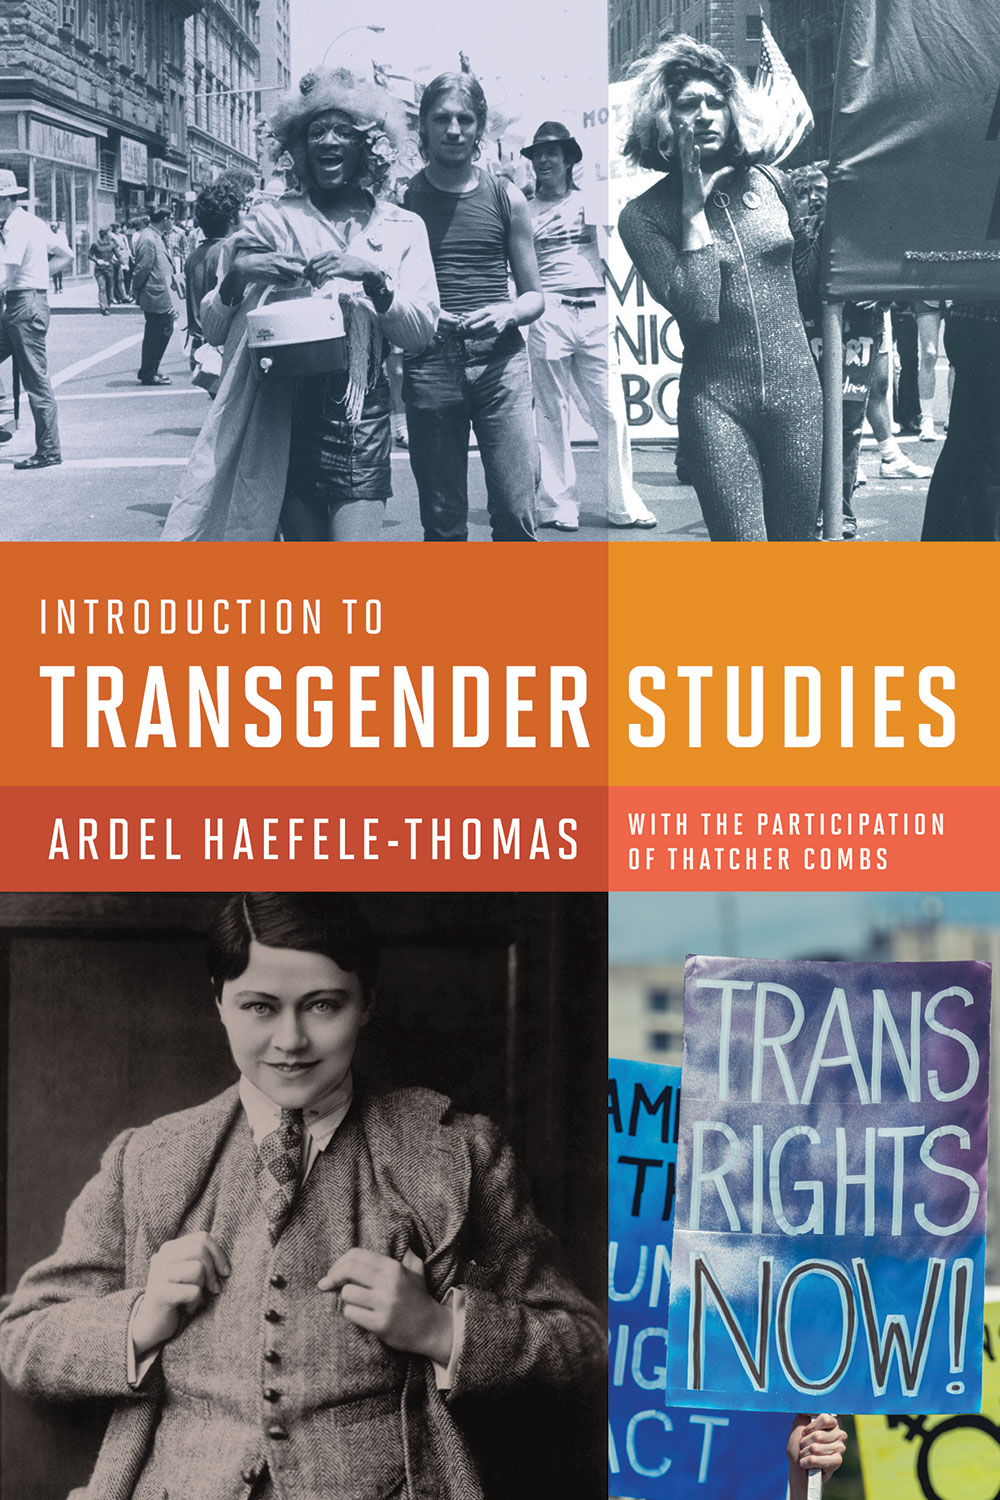 trans textbook Haefele-Thomas cover